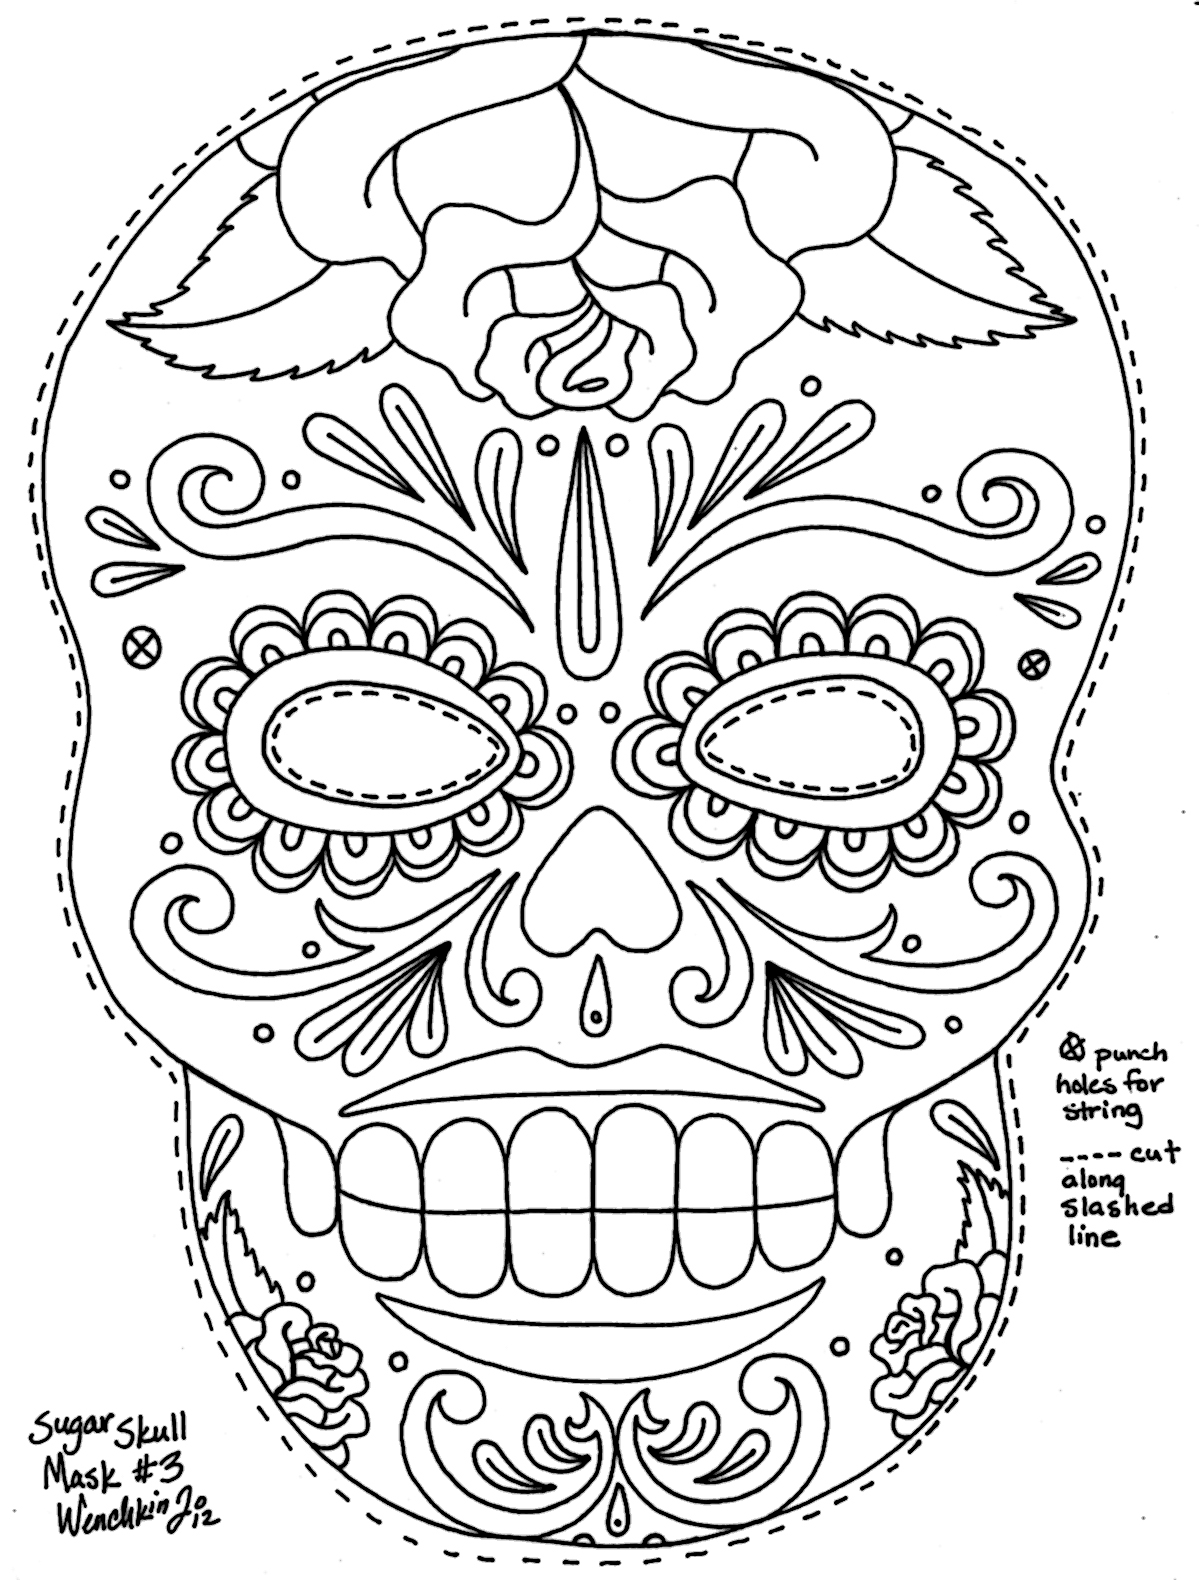 Yucca Flats, N.M.: Wenchkin\'s Coloring Pages - Sugar Skull Mask with ...